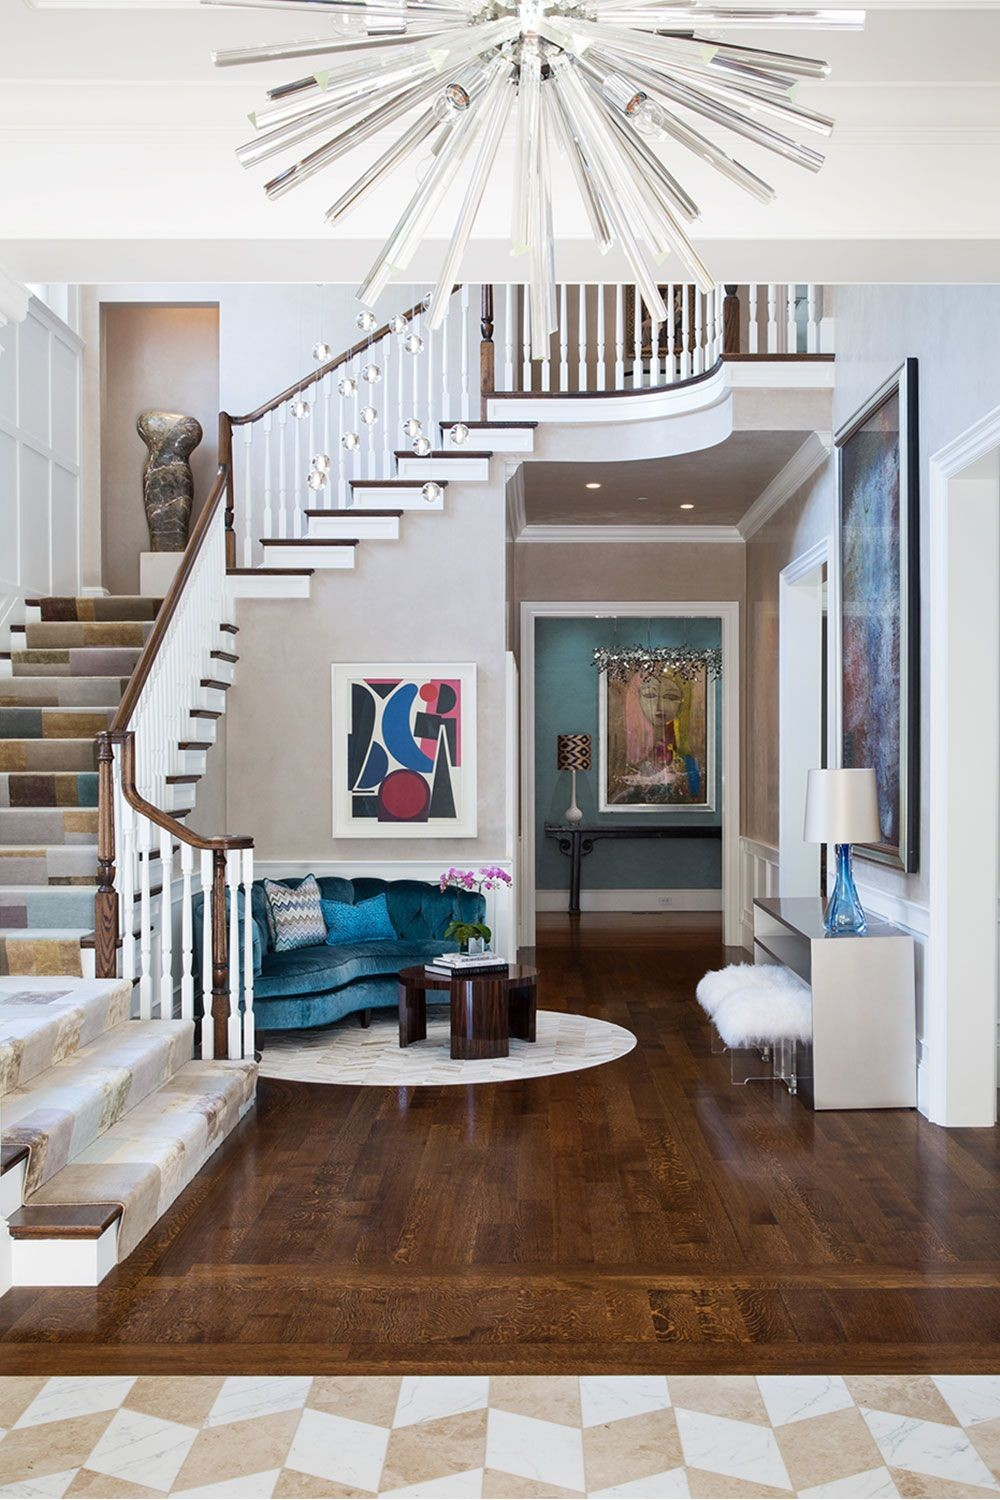 Be Inspired by a Series of Outstanding Entryway Lighting Ideas 5